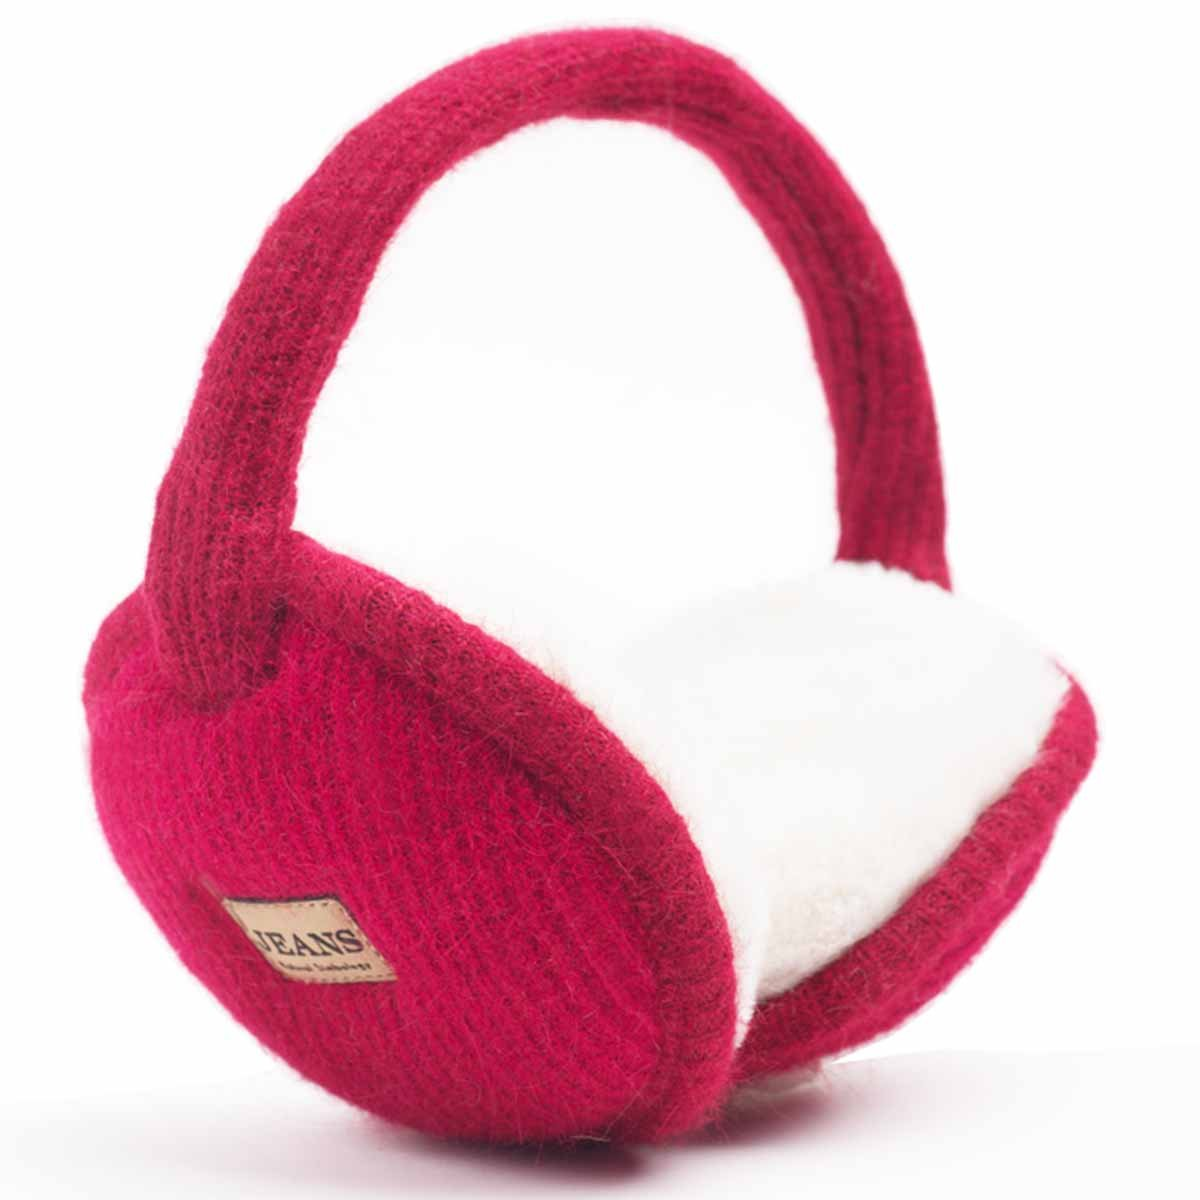 YOMOSI Women Girls Men Winter Warm Adjustable Earmuffs, Ear Warm Plush Foldable (red)